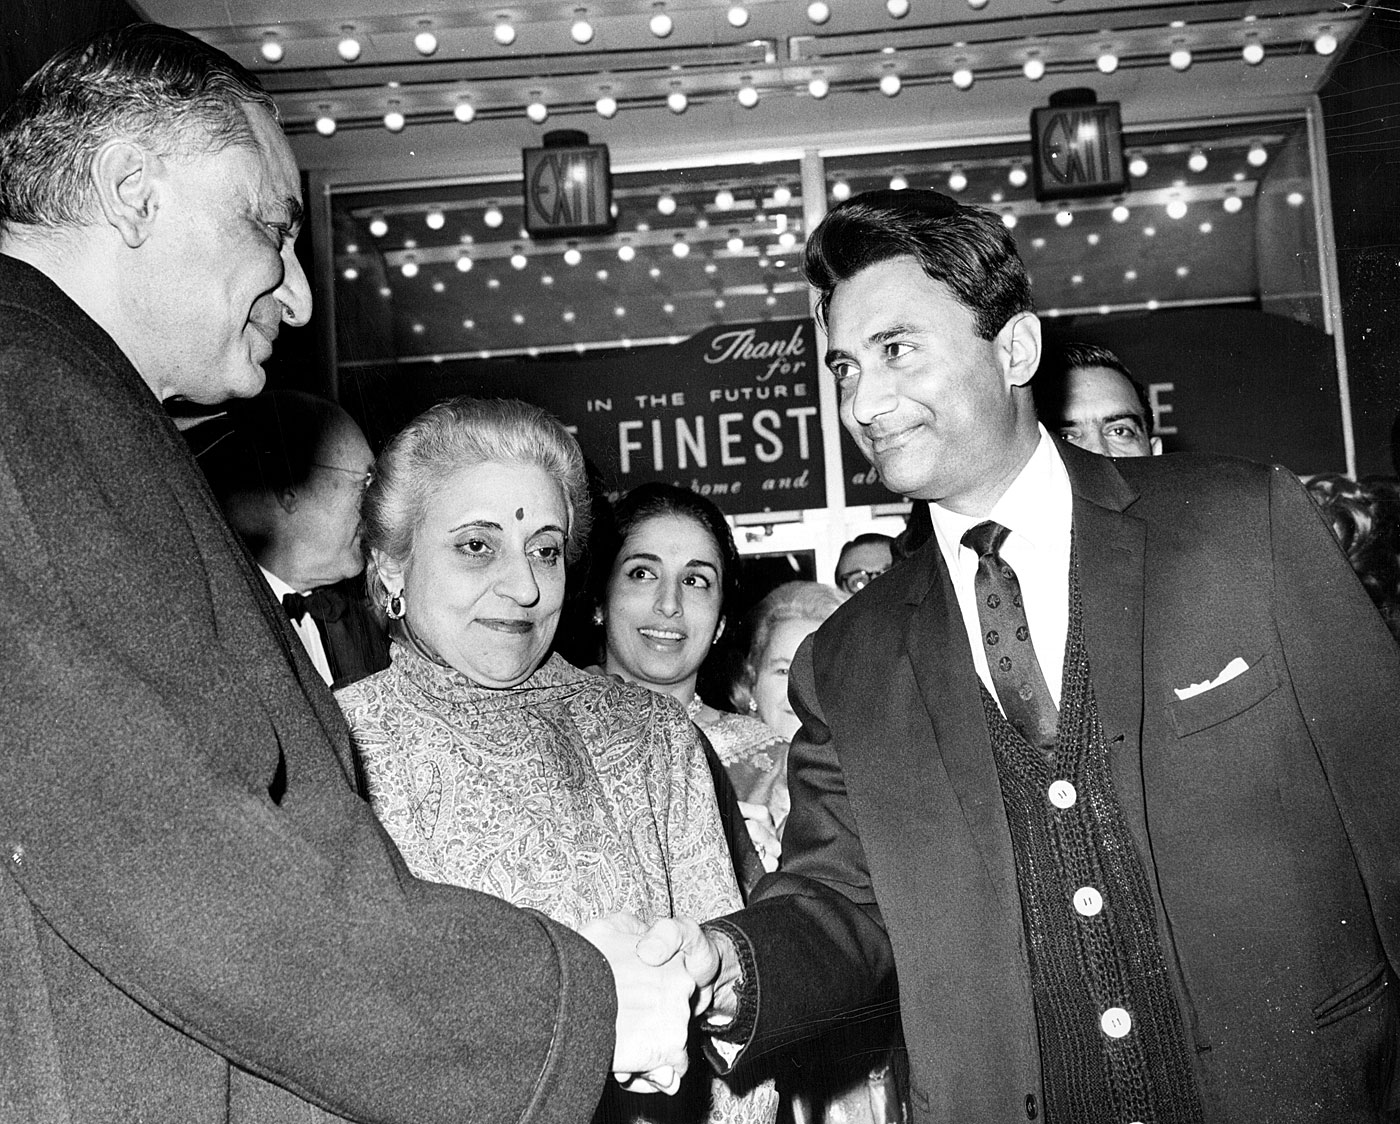 Dev Anand (far right) was among the first of Bollywood's superstars to play the role of a cricketer, beginning with <i>Love Marriage</i> in 1959